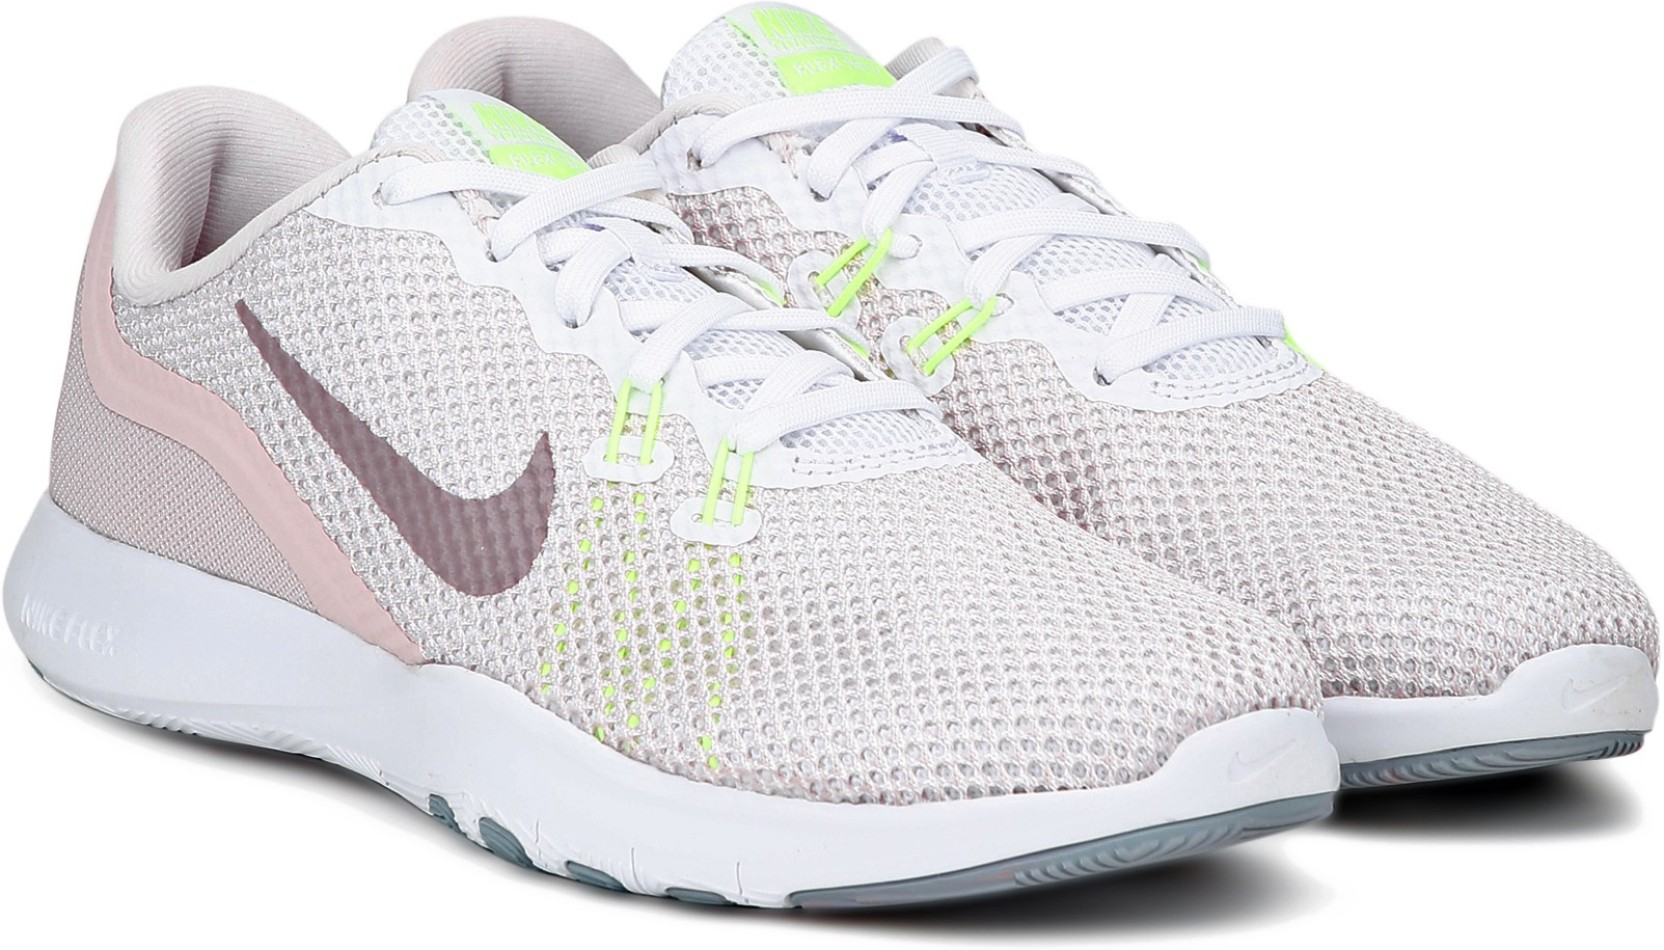 uk cheap sale new specials exclusive range Nike W NIKE FLEX TRAINER 7 Training & Gym Shoes For Women